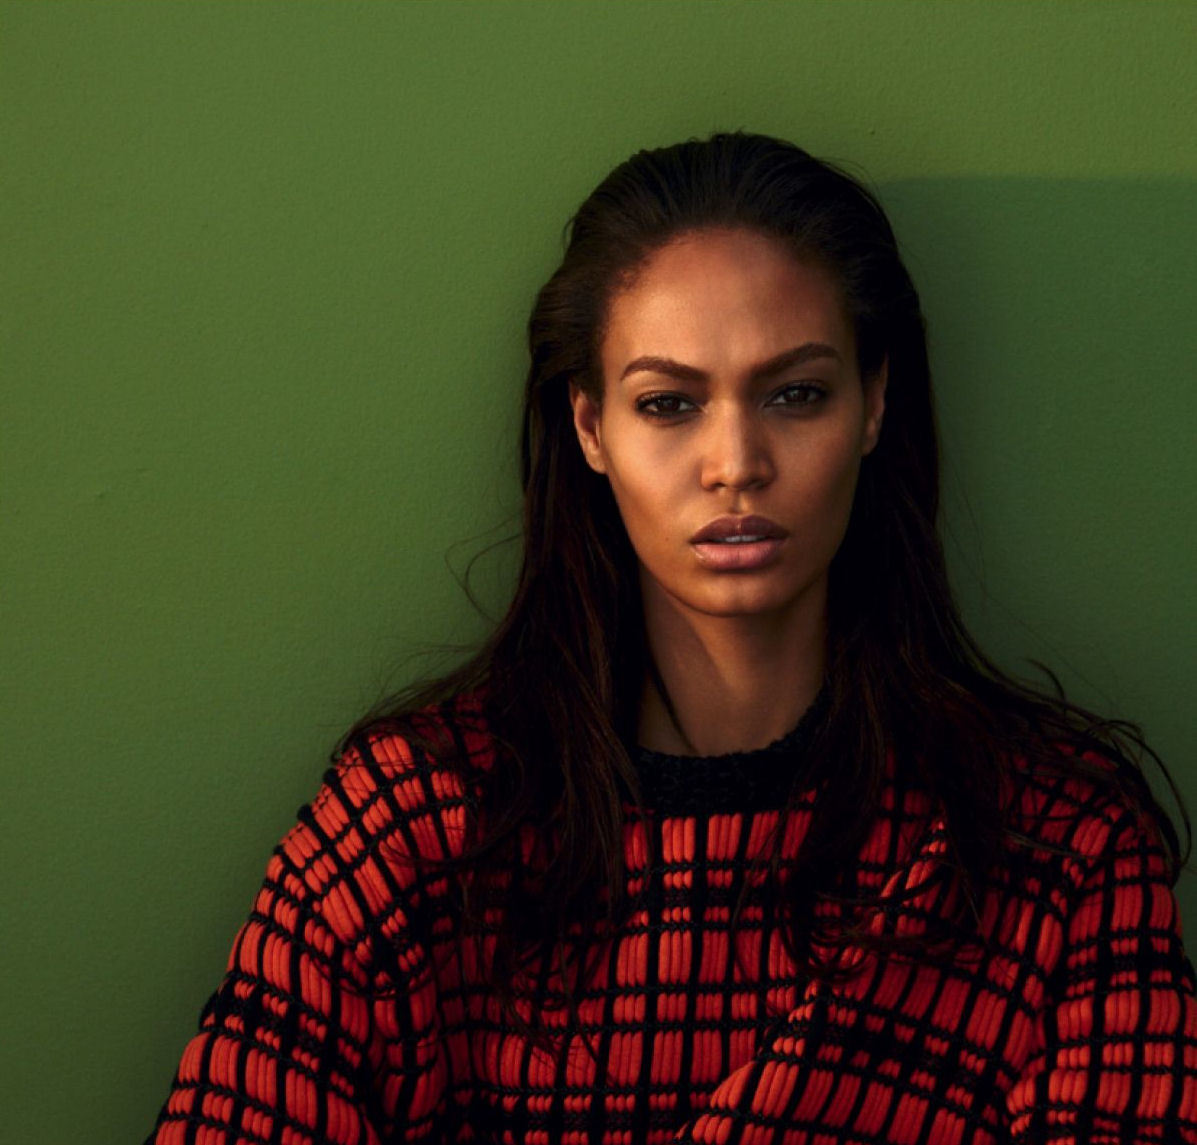 """Health, Wealth, Happiness"": Joan Smalls by Sean + Seng for 032c Fall/Winter 12.13"